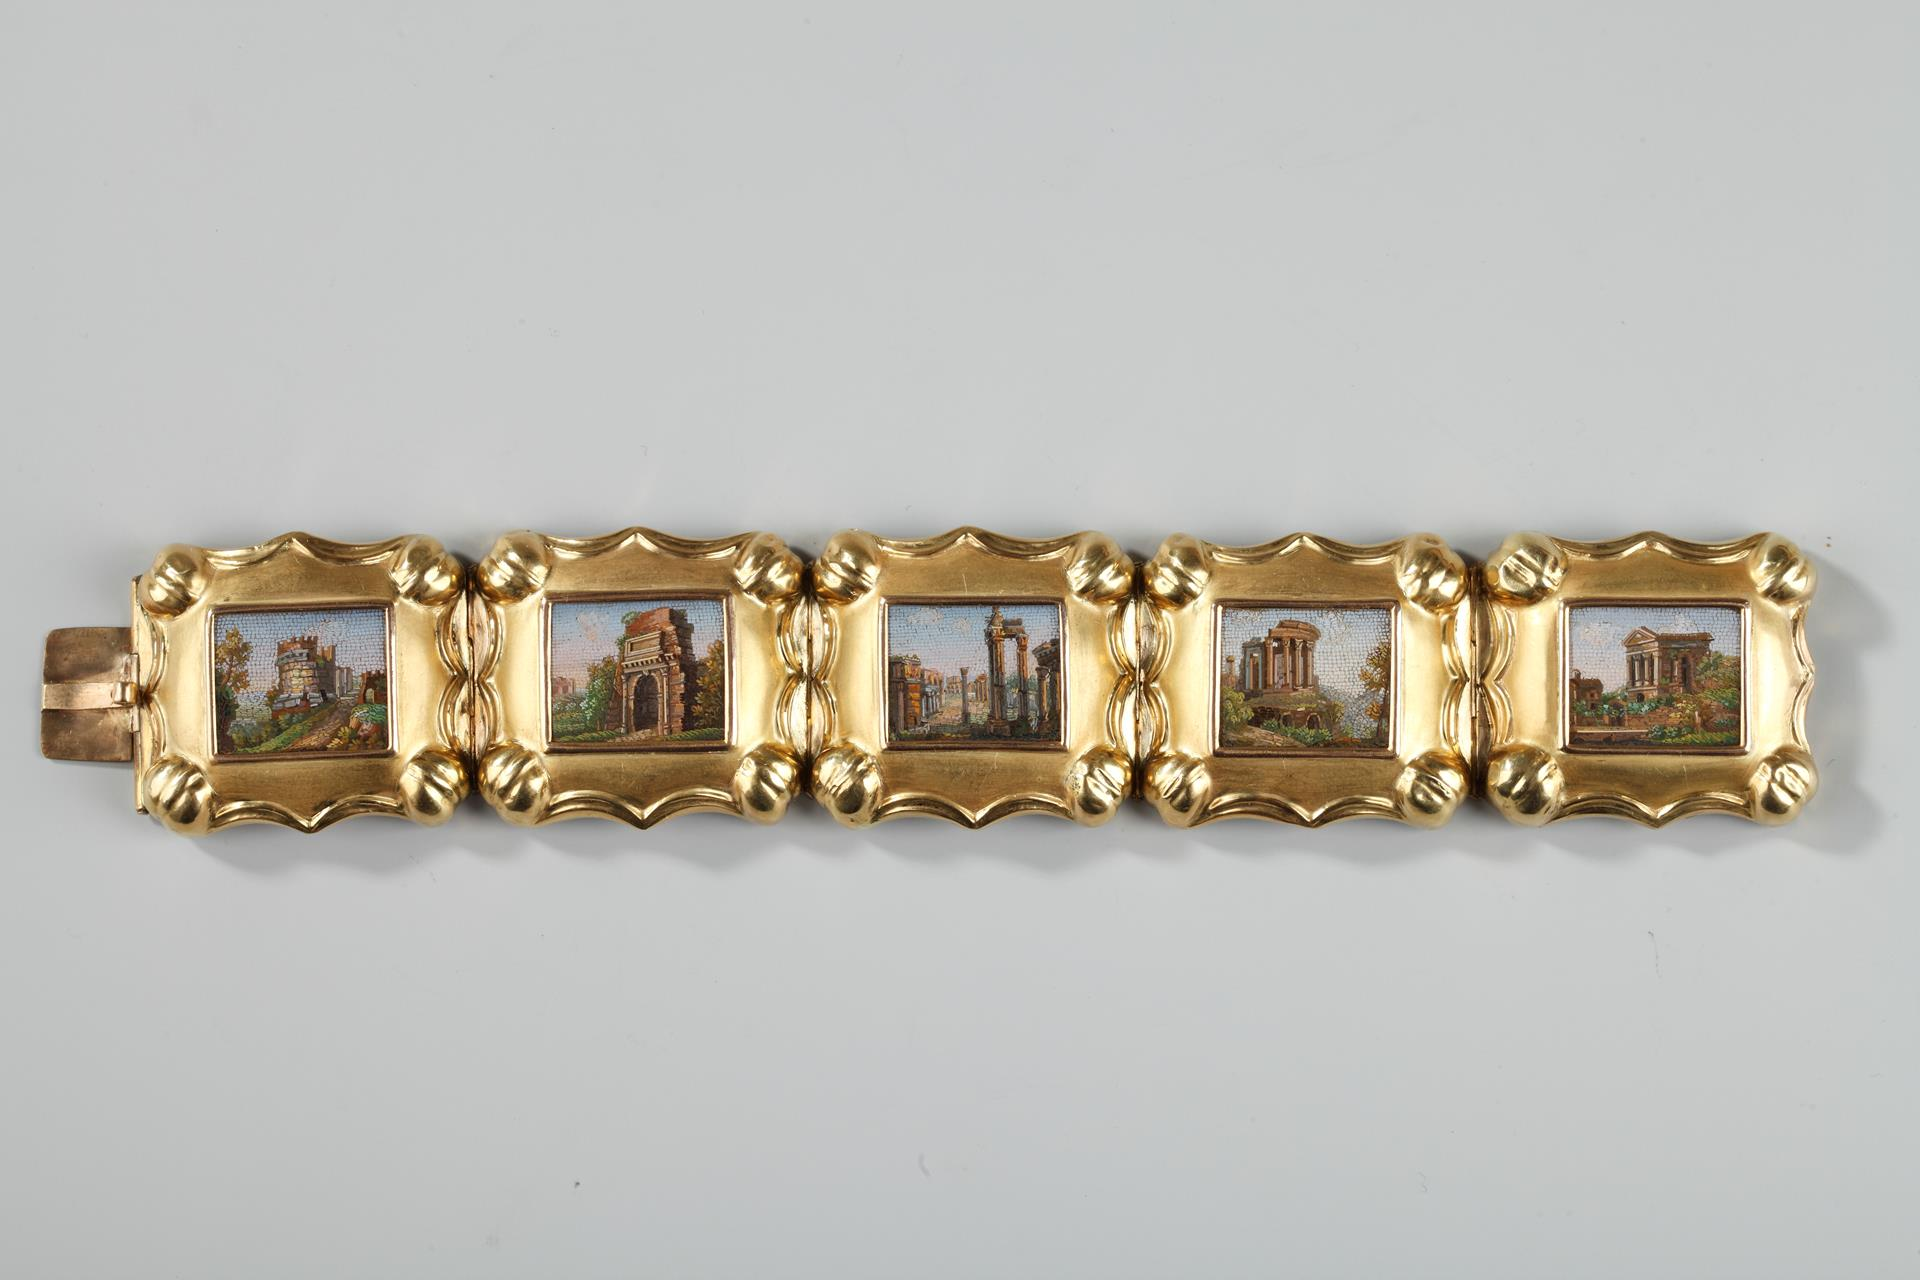 GOLD AND MICROMOSAIC BRACELET. FIRST HALF OF THE 19TH CENTURY WORK